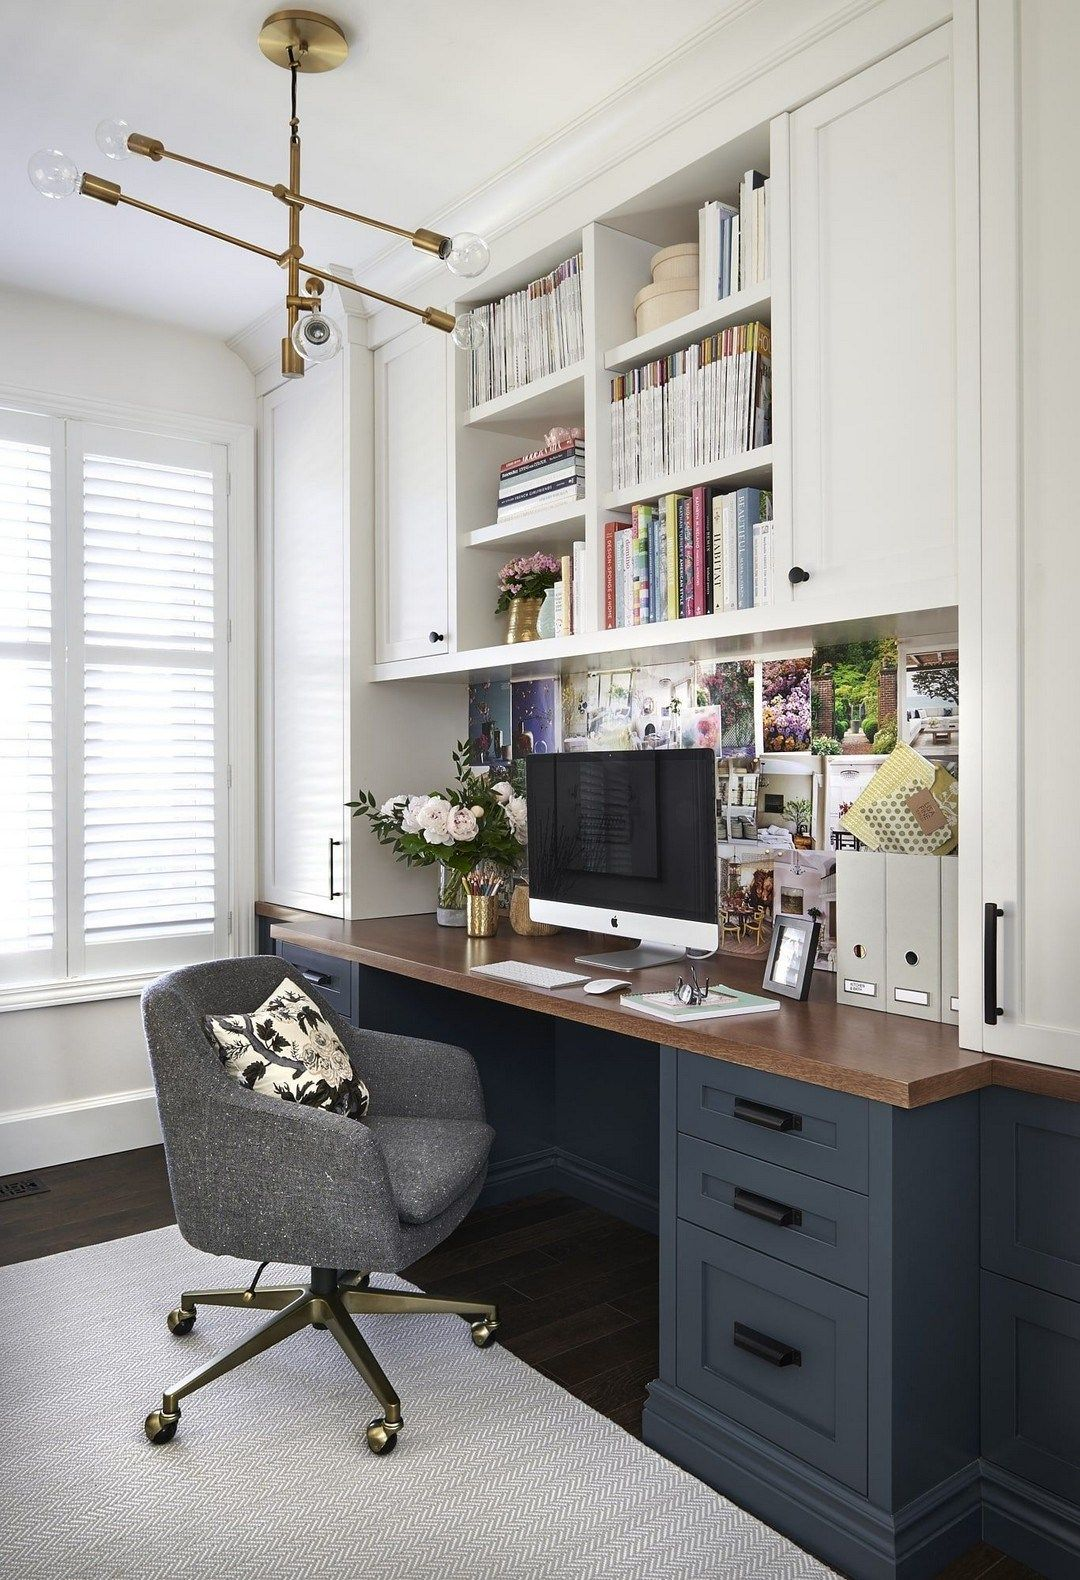 103 Home Office For Two Farmhouse Room Home Office Furniture Home Office Decor Home Office Design